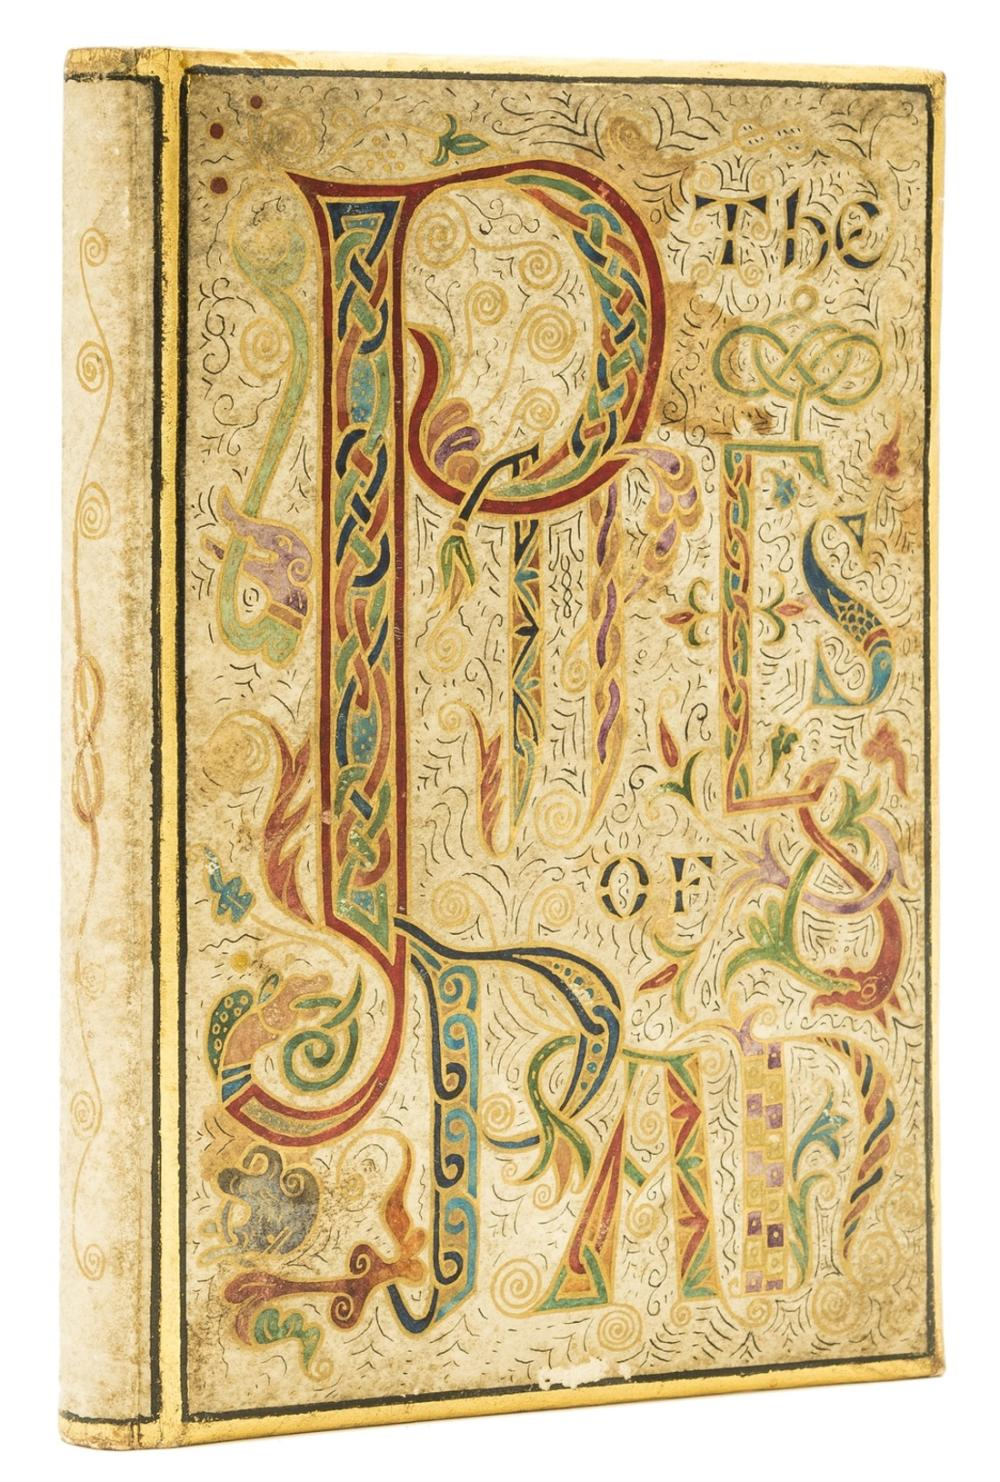 Binding.- Carman (Bliss) The Pipes of Pan..., bound in hand-illuminated vellum in black, colours and gold, 1903.